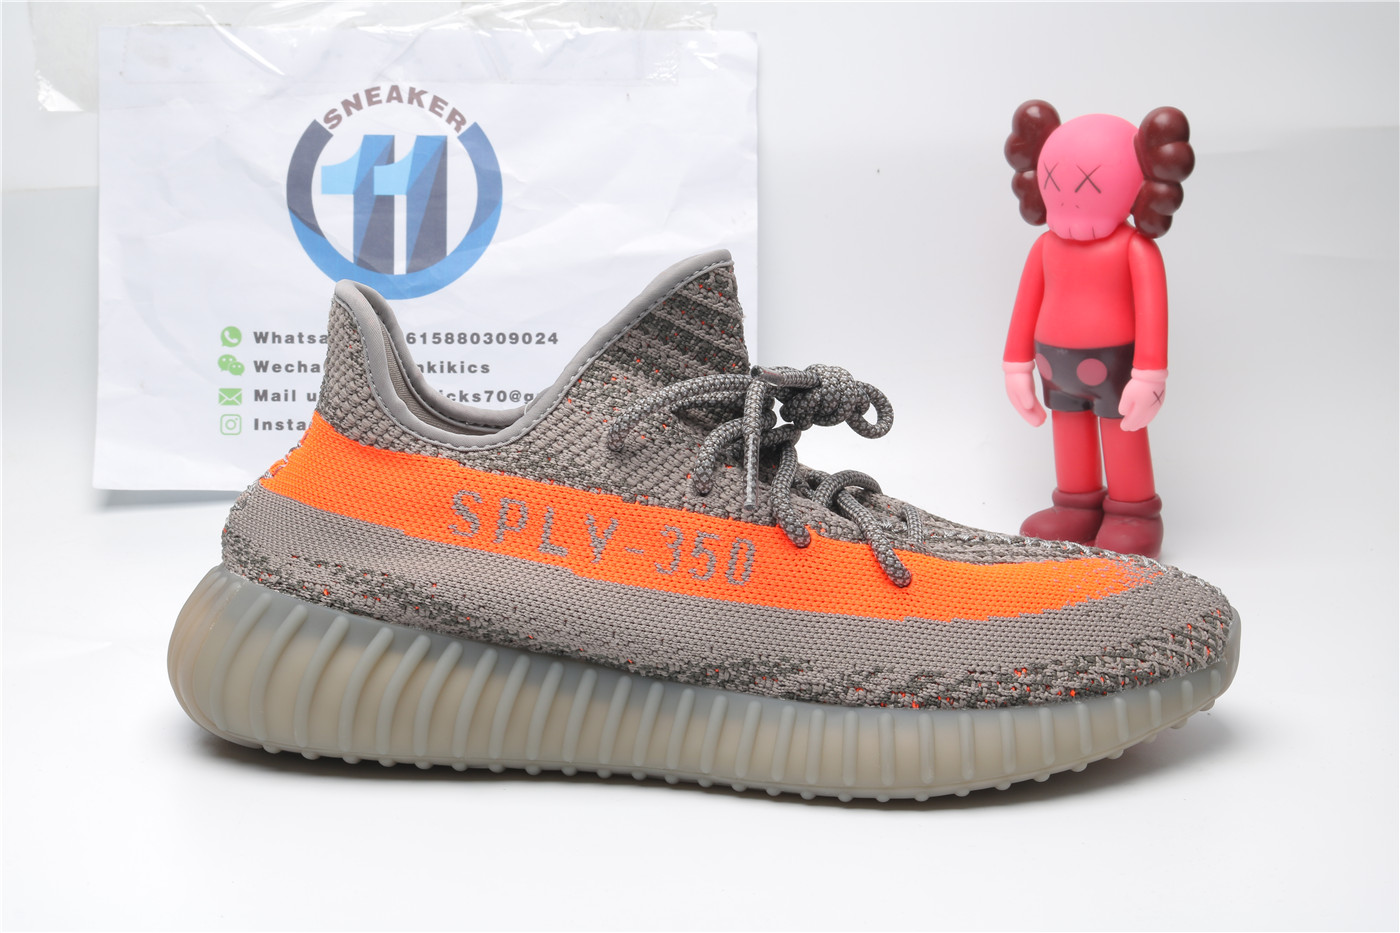 Adidas Yeezy Boost 350 V2 Beluga,All Products : Eleven Kicks, Eleven Kicks